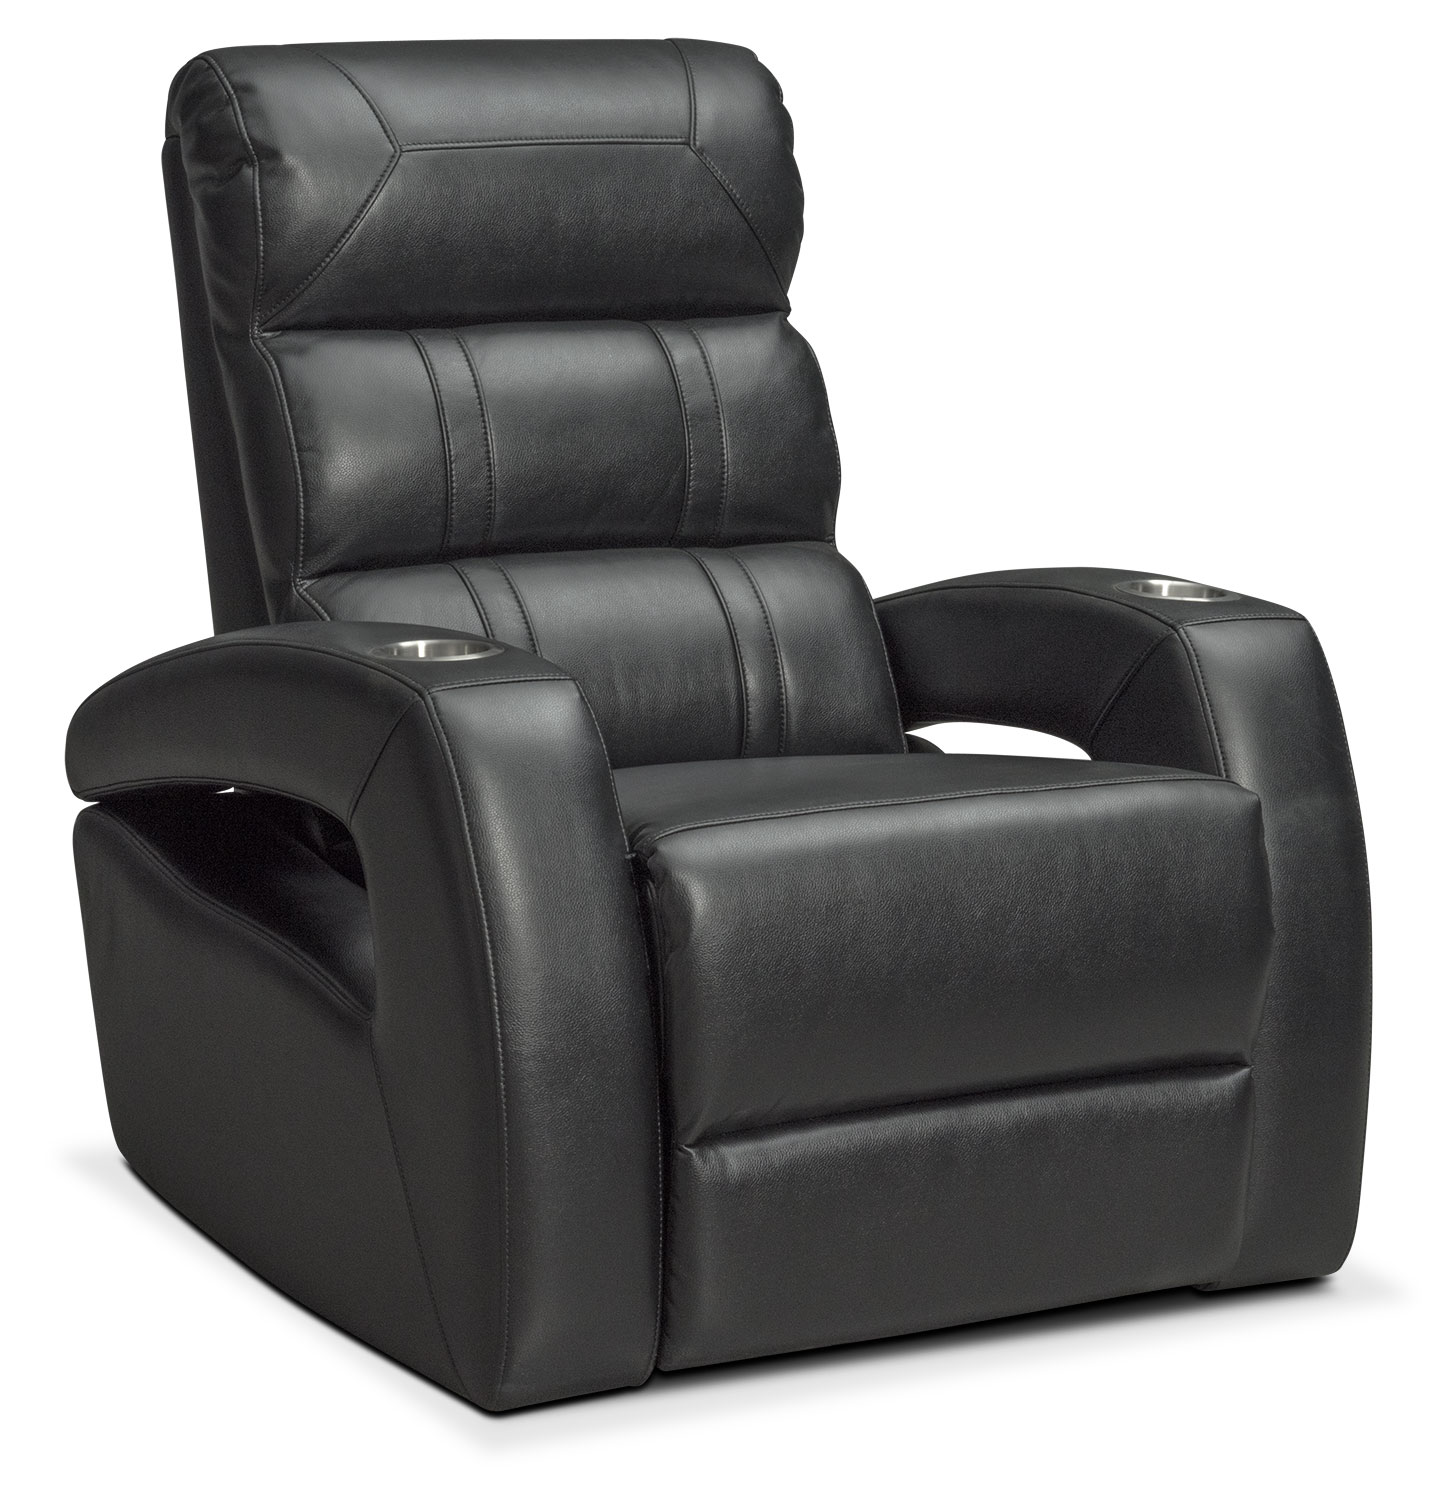 Living Room Furniture - Bravo Dual-Power Recliner